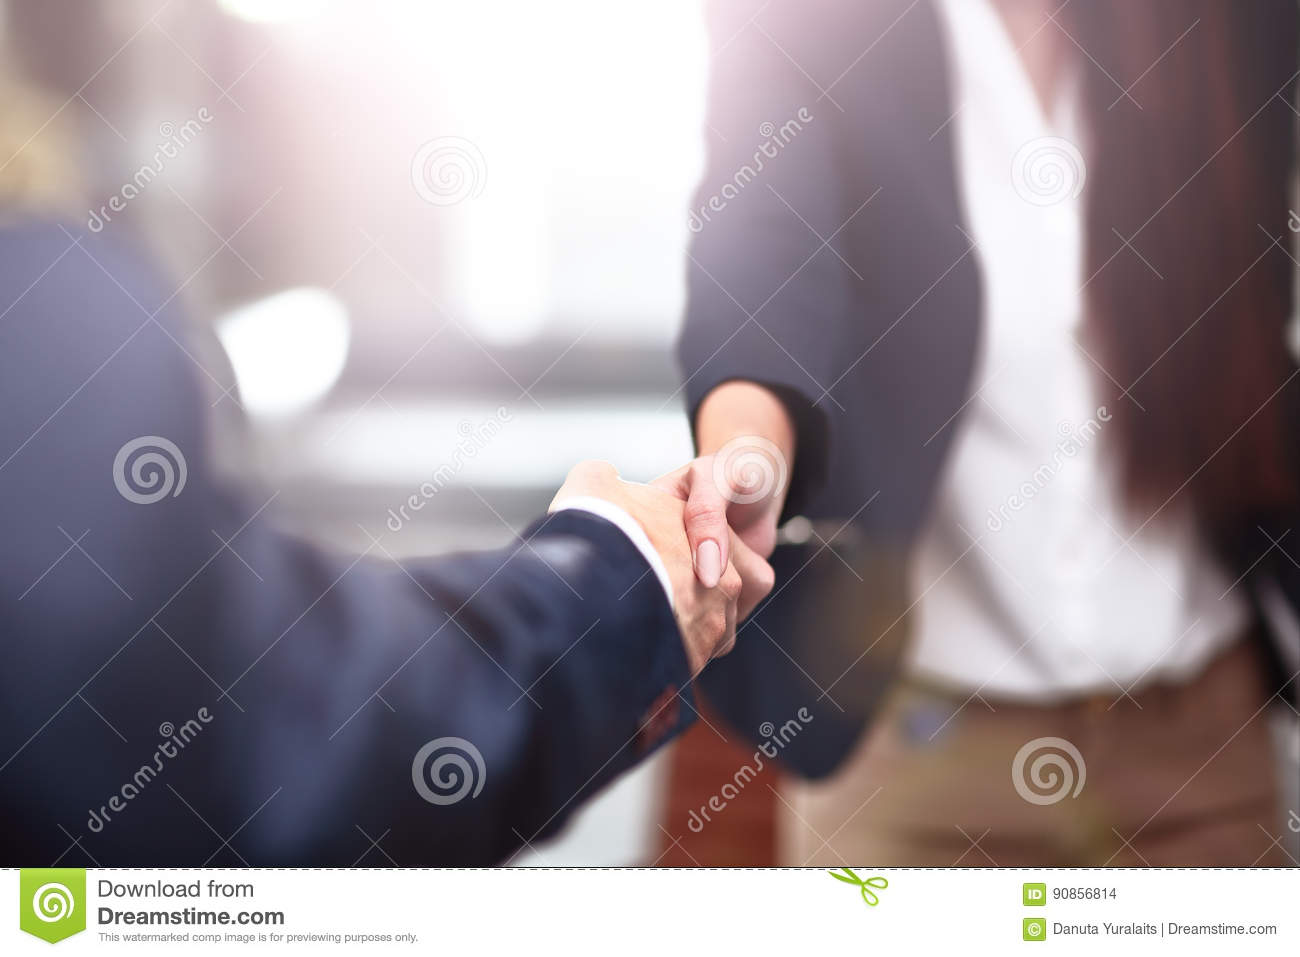 Two confident business man shaking hands during a meeting in office, success, dealing, greeting and partner concept.